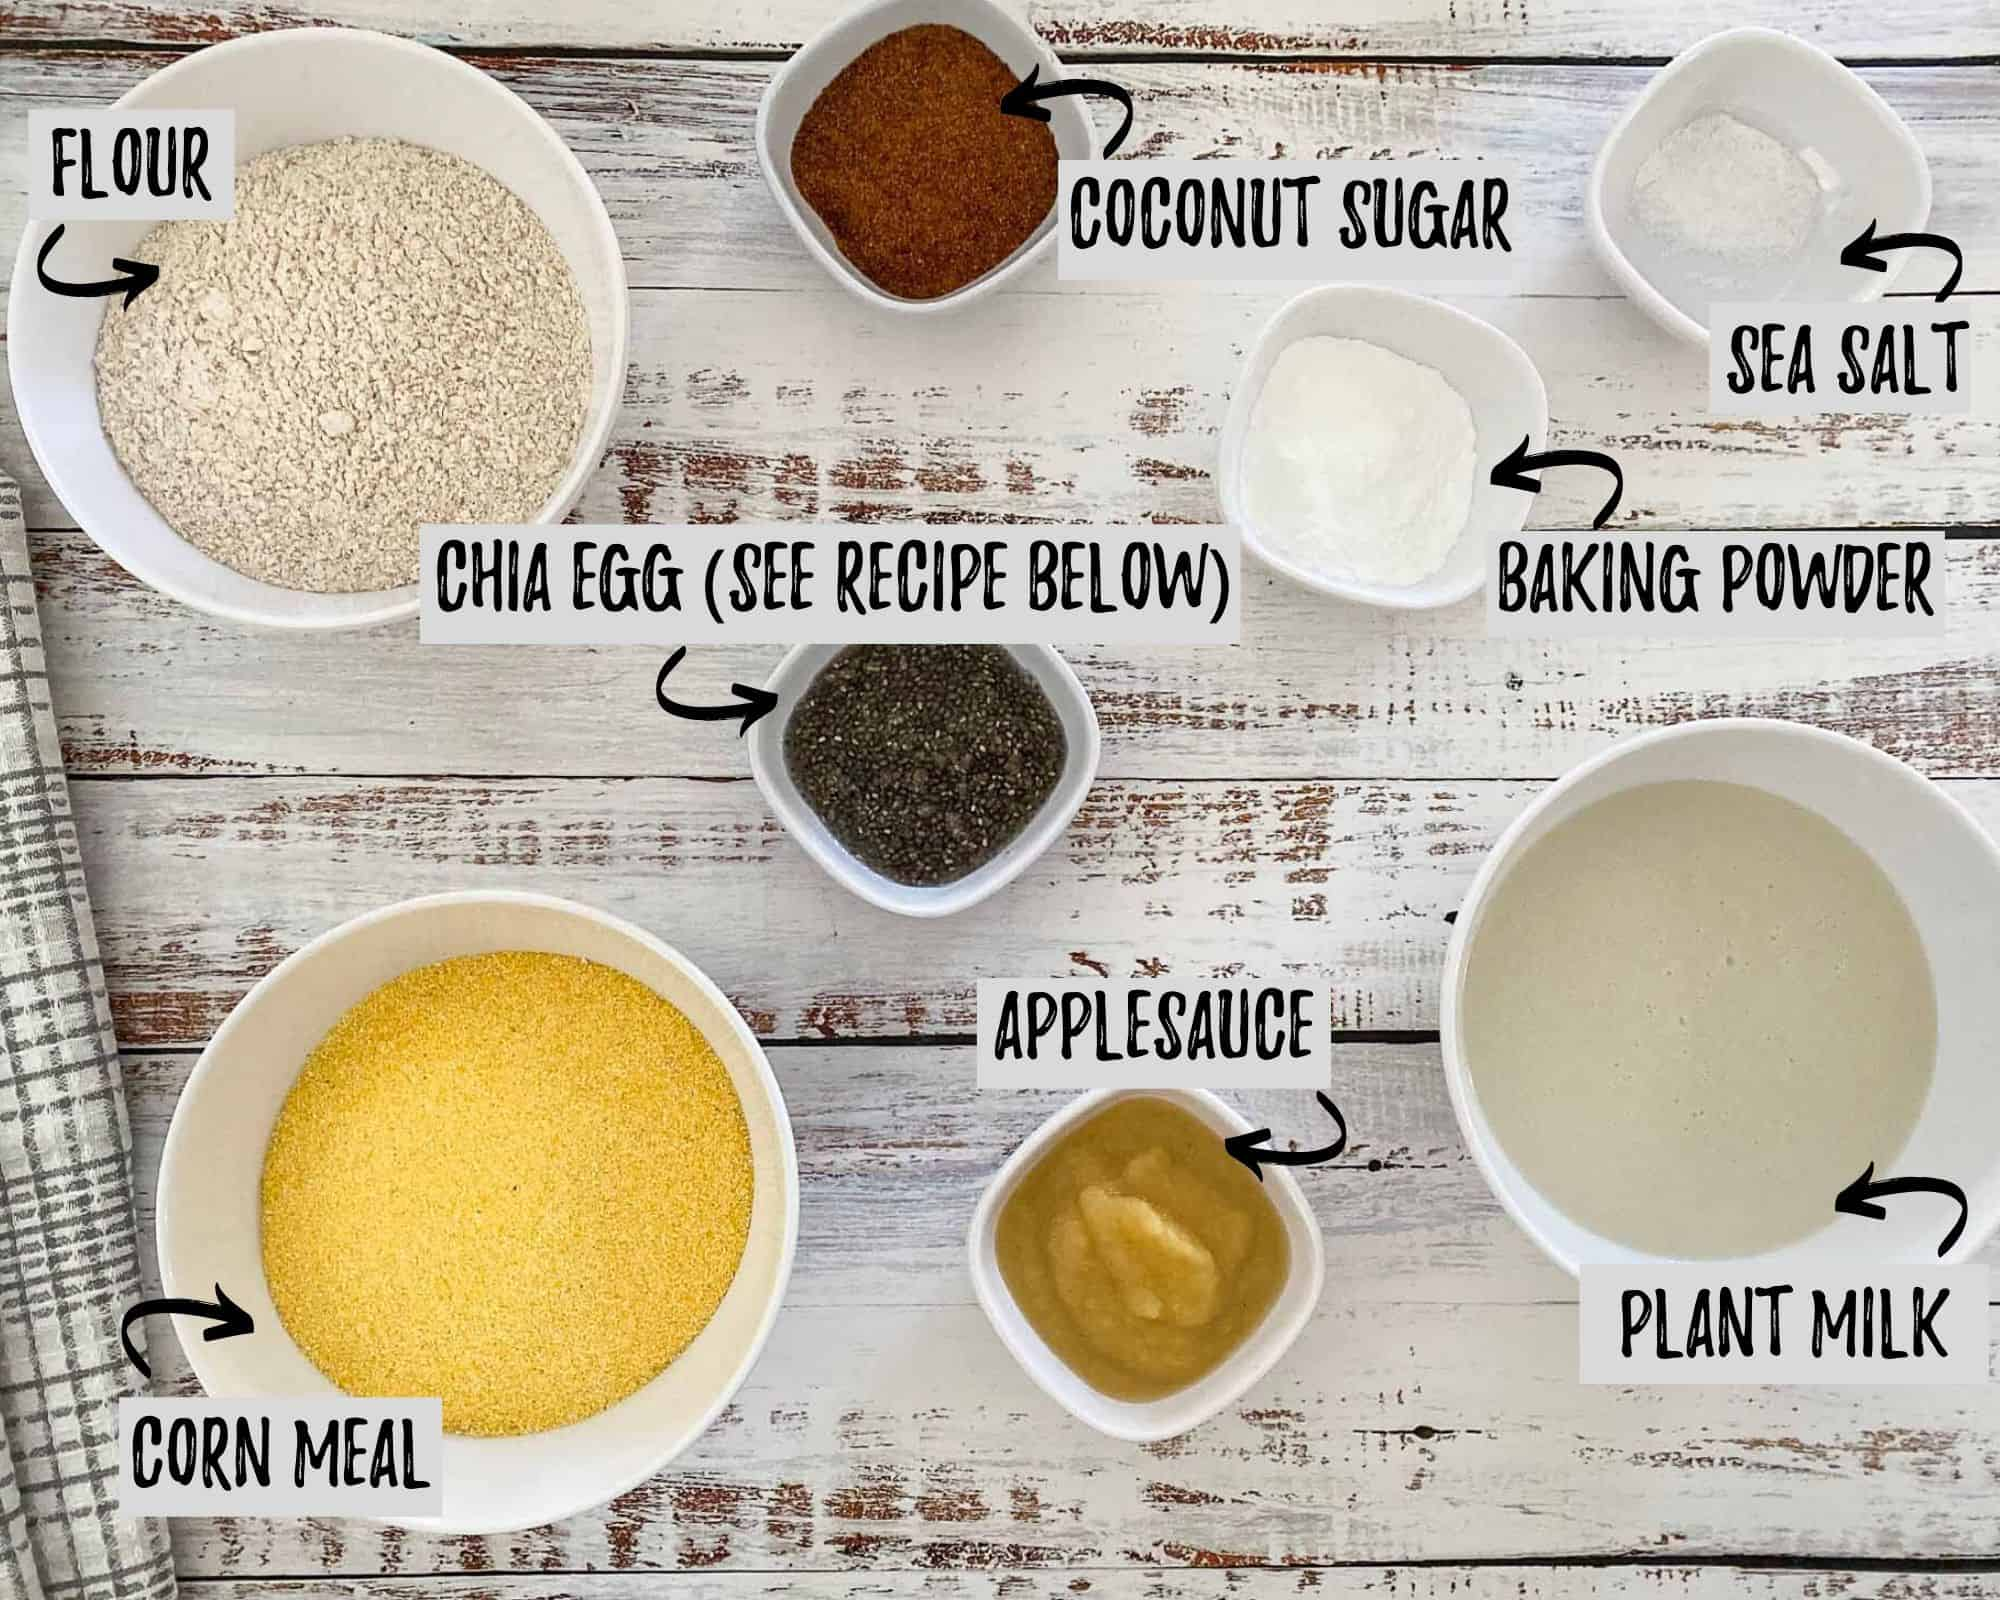 corn meal, flour, chia seeds, brown sugar, applesauce, baking powder and milk in small bowls